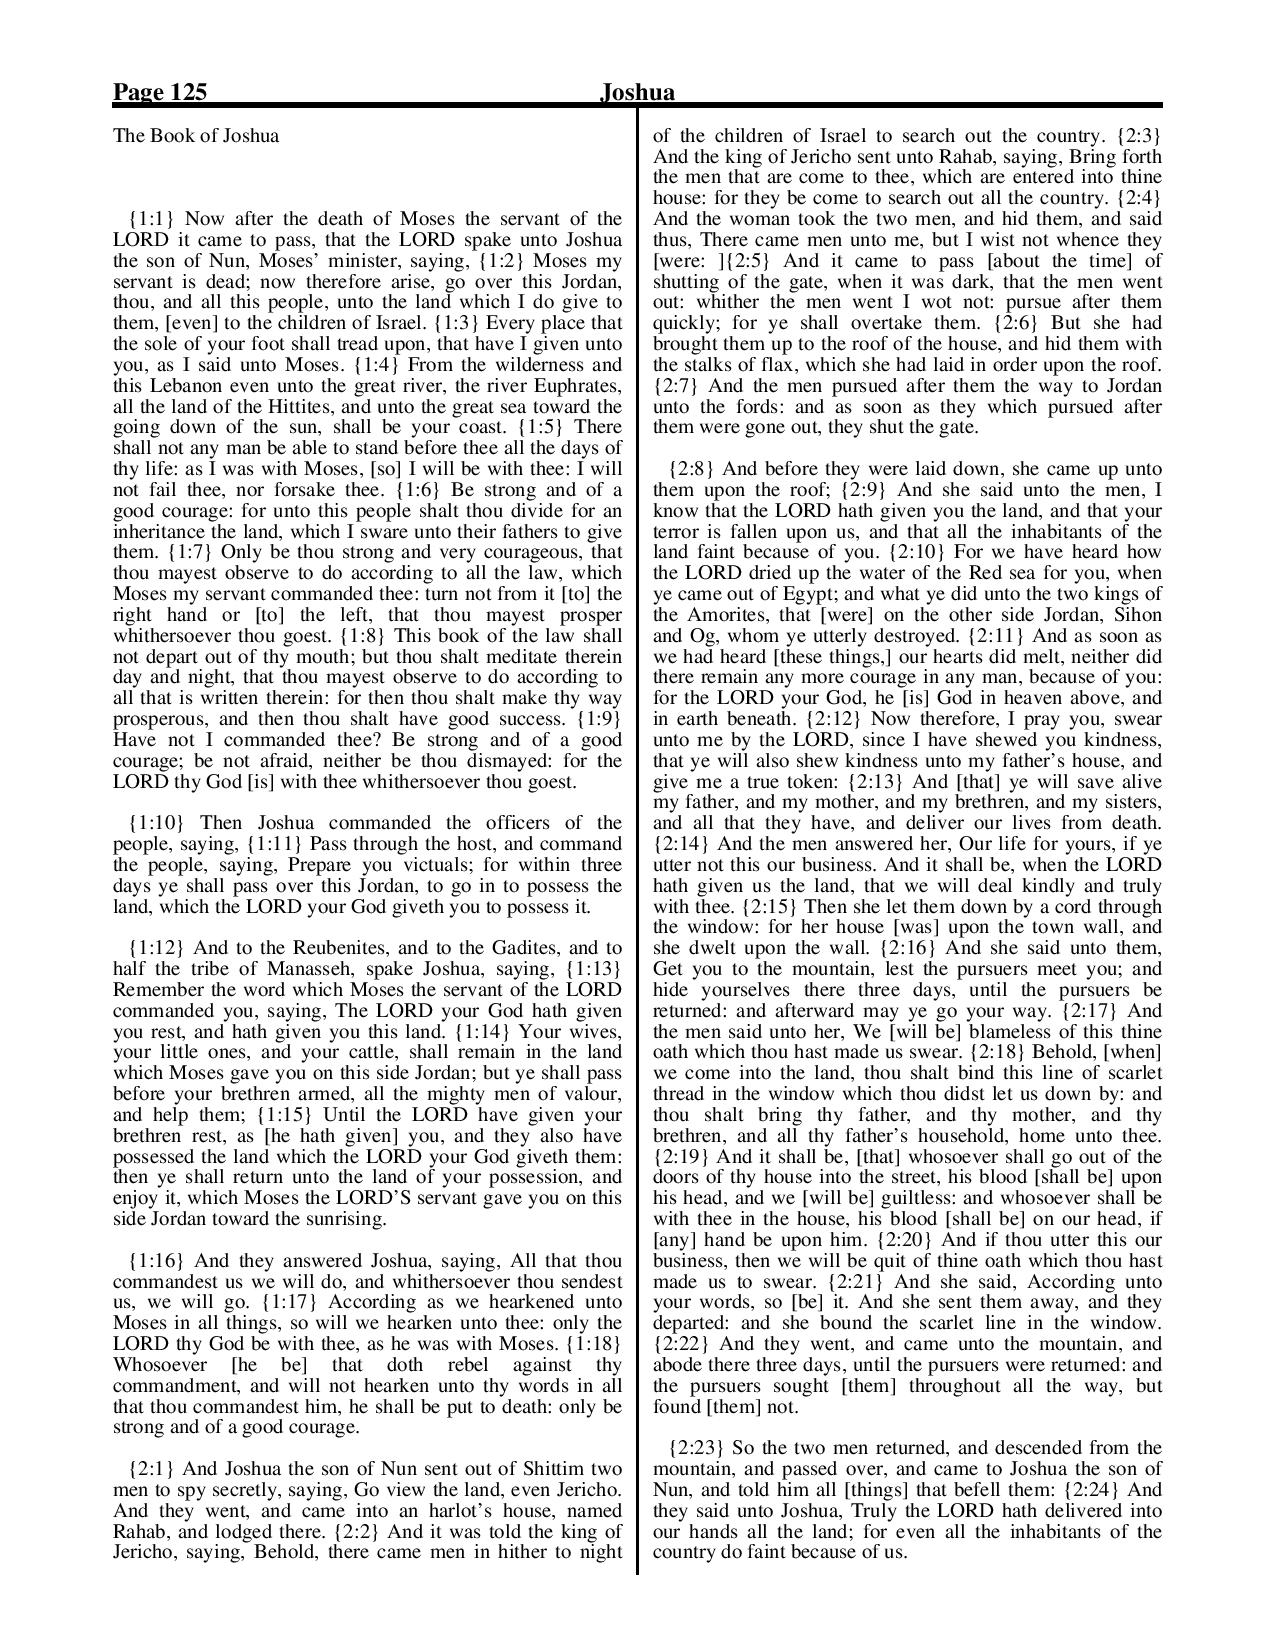 King-James-Bible-KJV-Bible-PDF-page-146